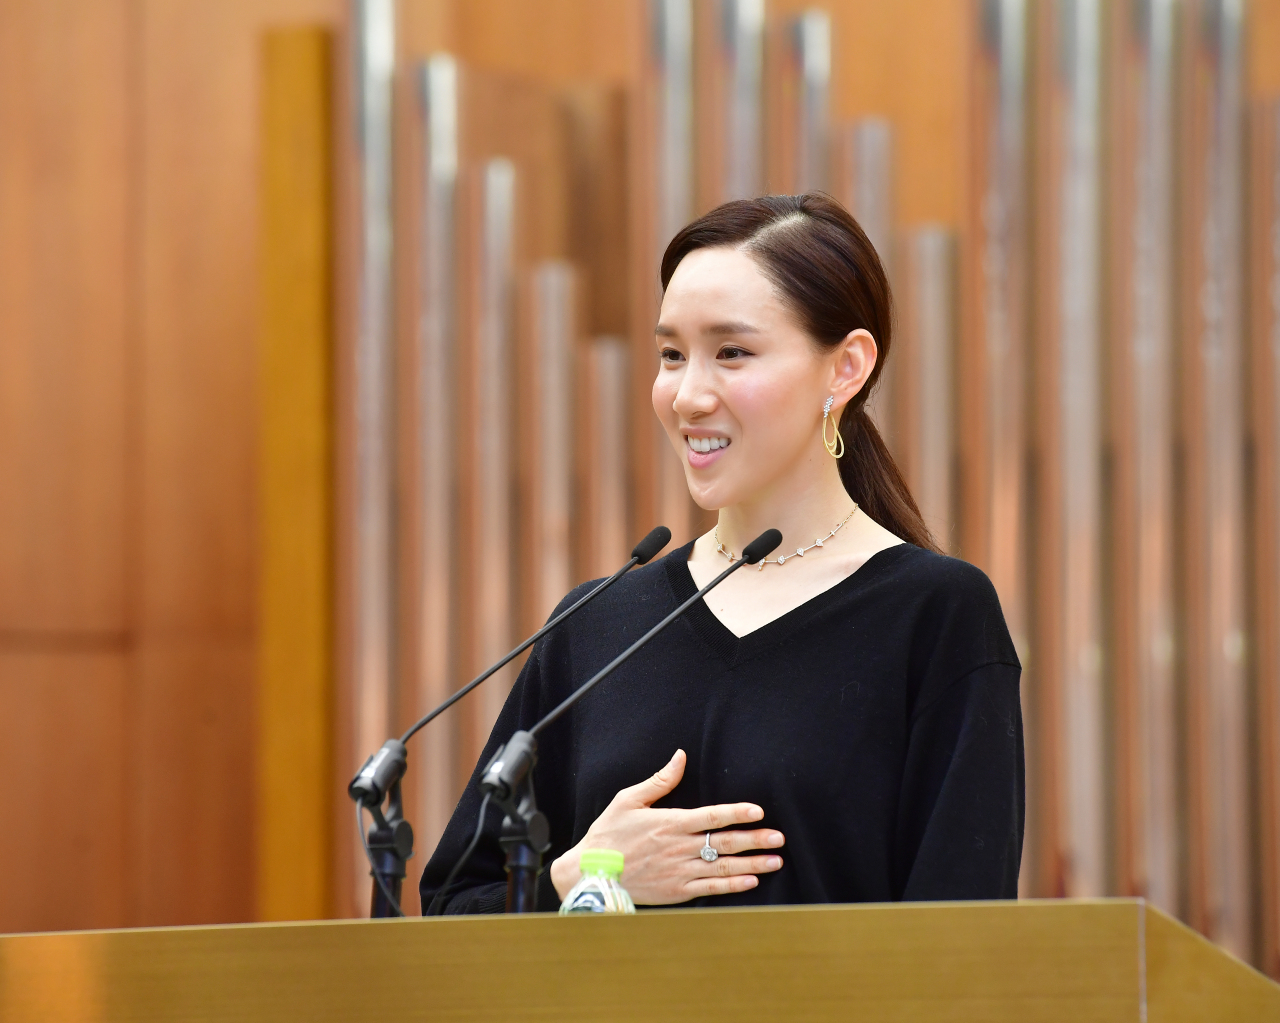 Seo Hee speaks at Seoul Cyber University on Monday. (Seoul Cyber University)